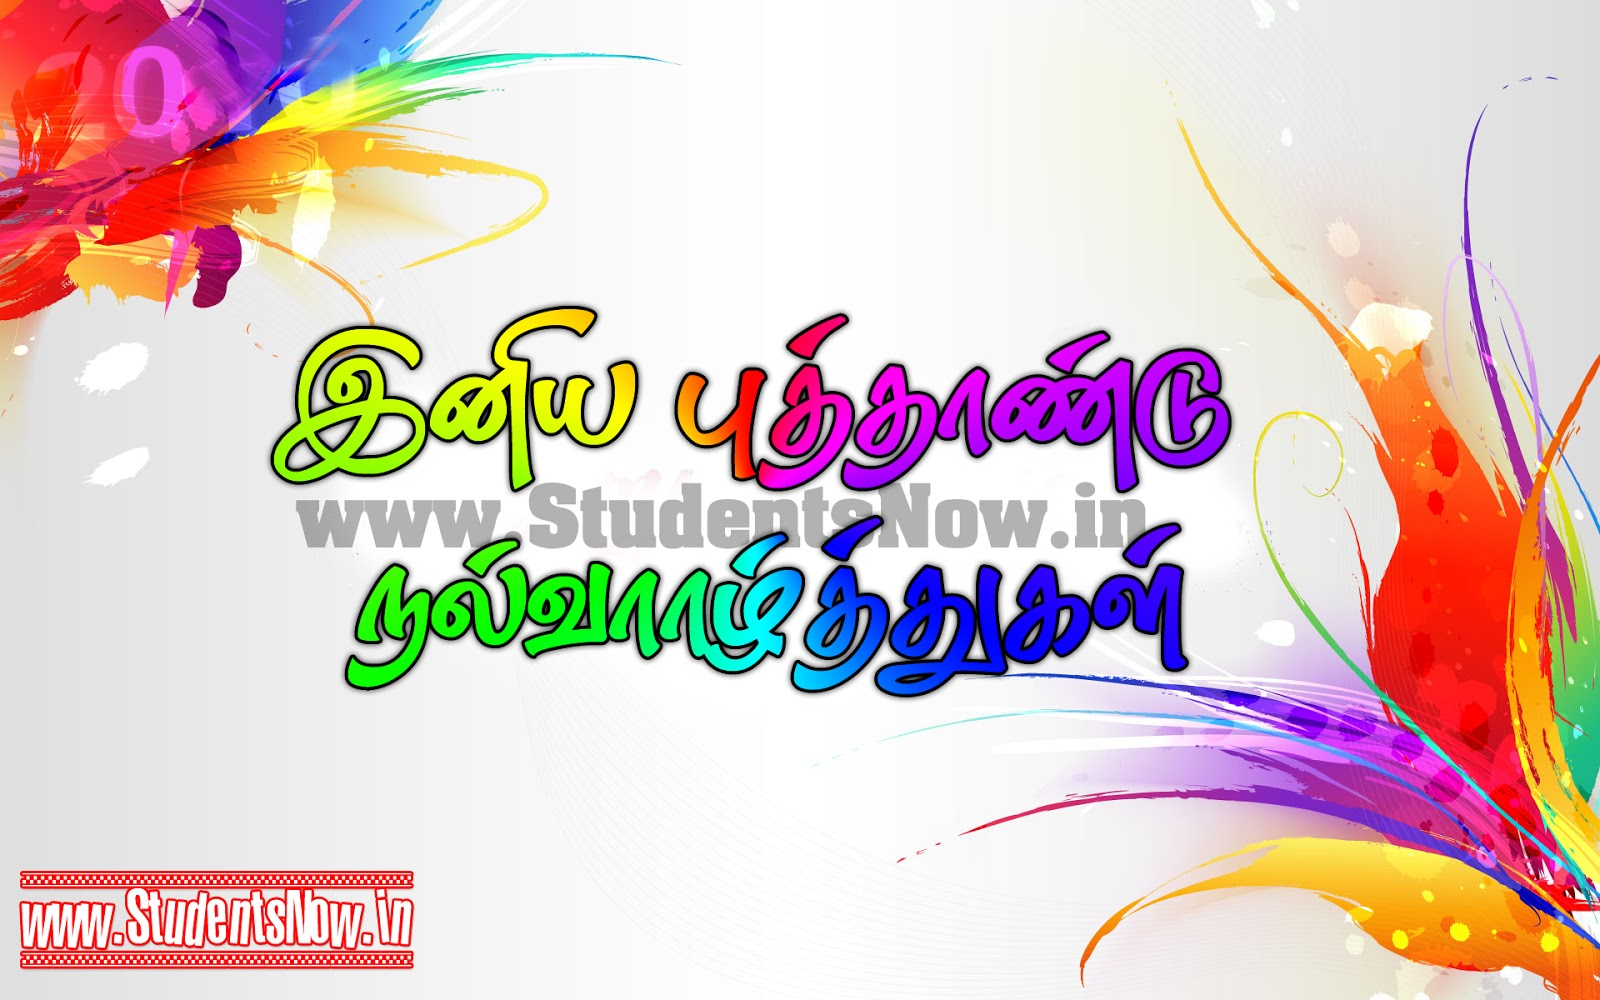 NewYearGreetingsinTamilStudentsNowin2jpg. 1600 x 1000.Happy New Year Quotes In Hindi Font